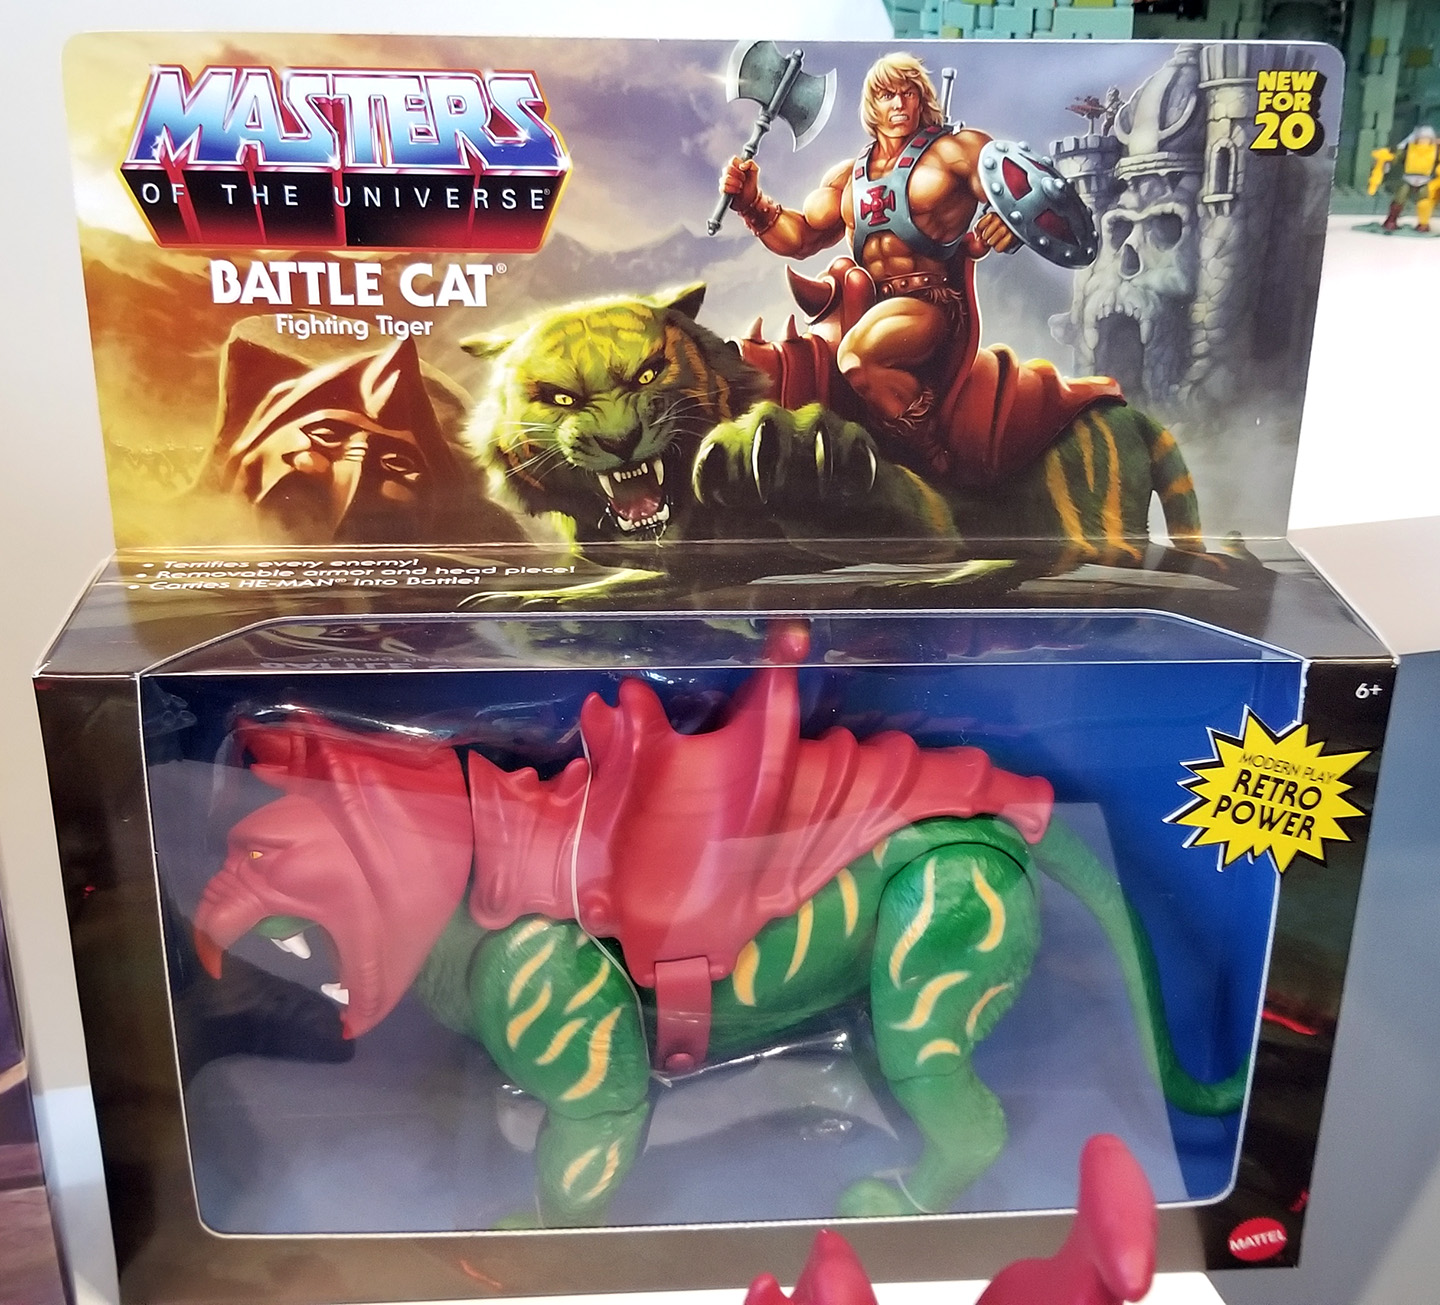 MOTU Modern Masters of the Universe Display Case